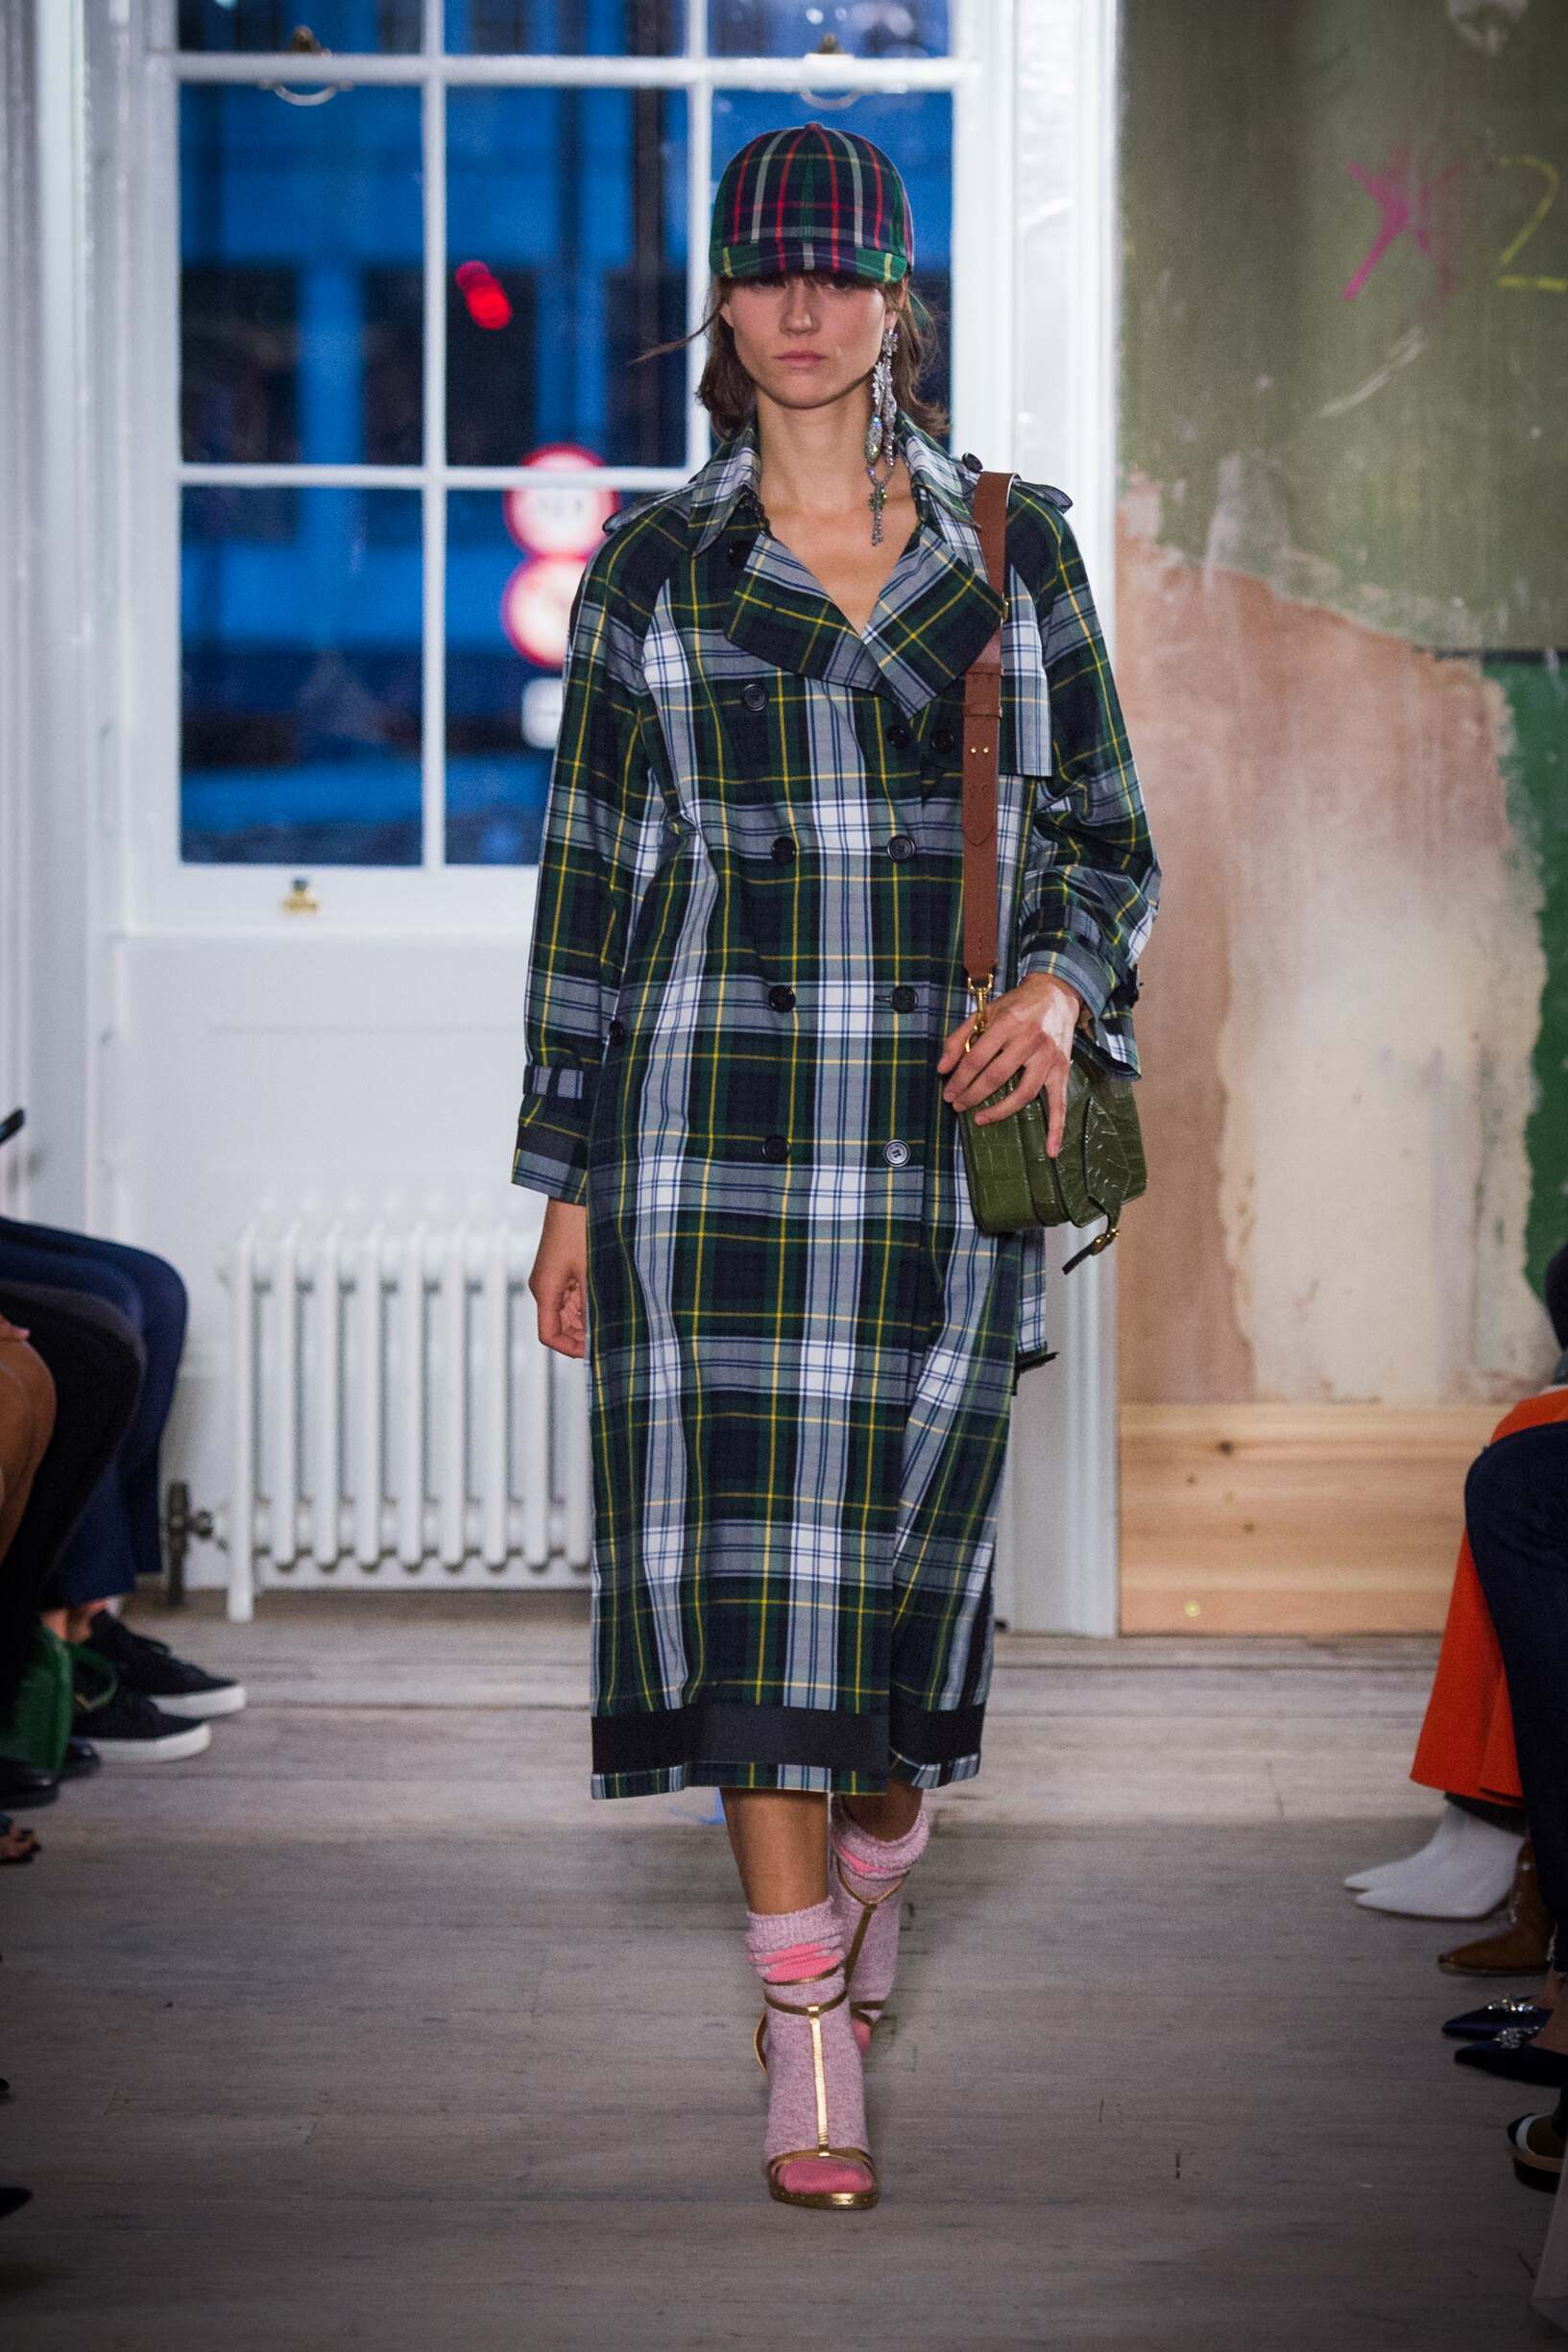 Burberry September 2017 Collection Look 11 London Fashion Week